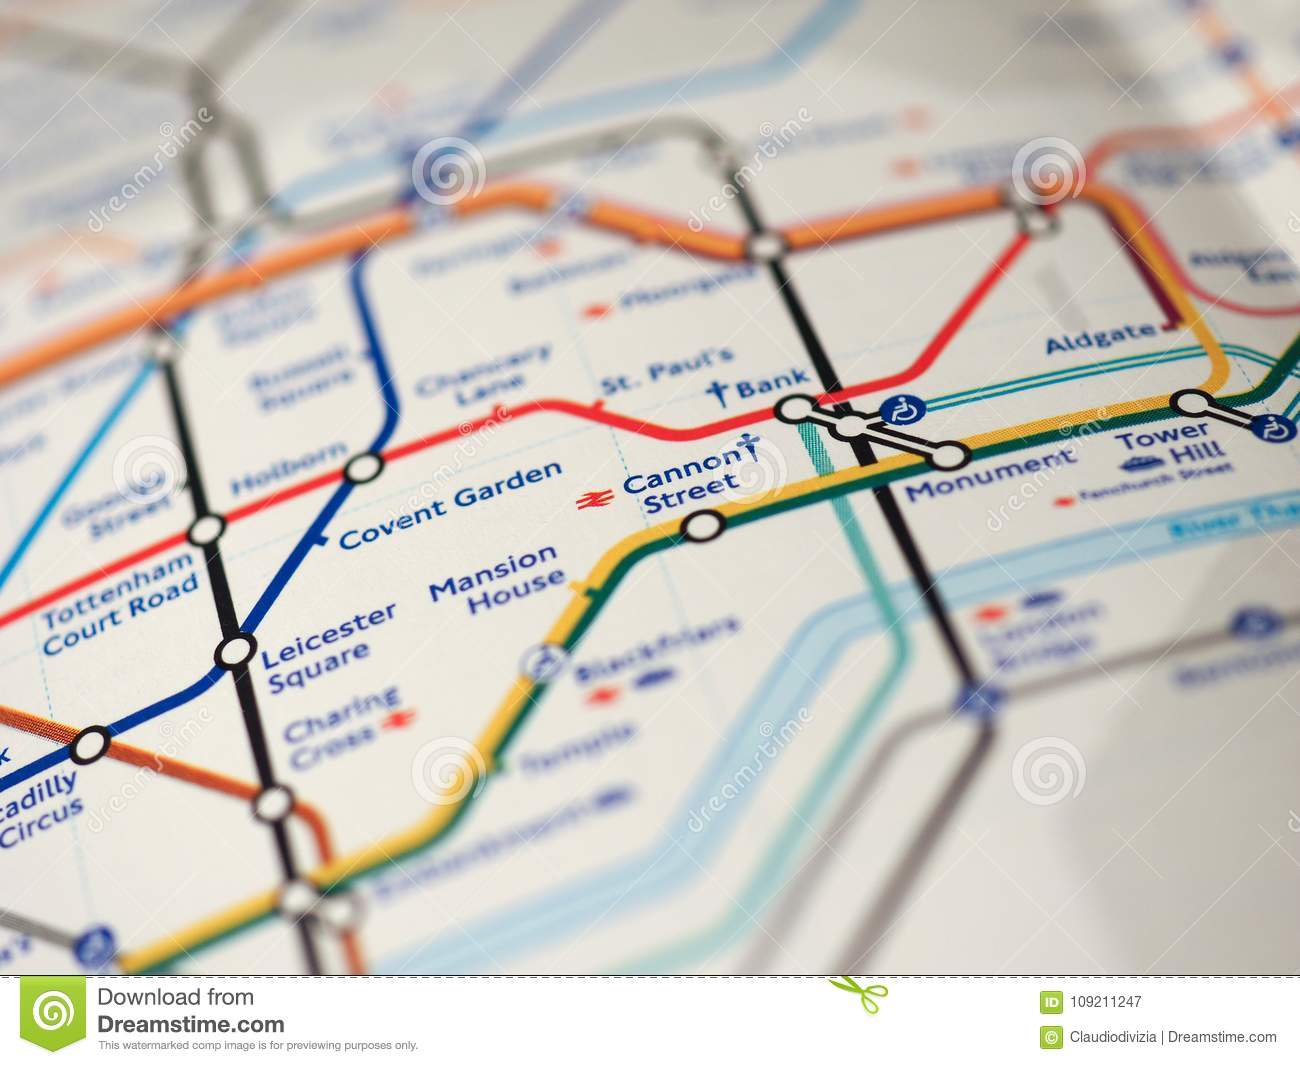 Street Map Of London With Tube Stations.Map Of London Underground Stock Image Image Of 2018 109211247